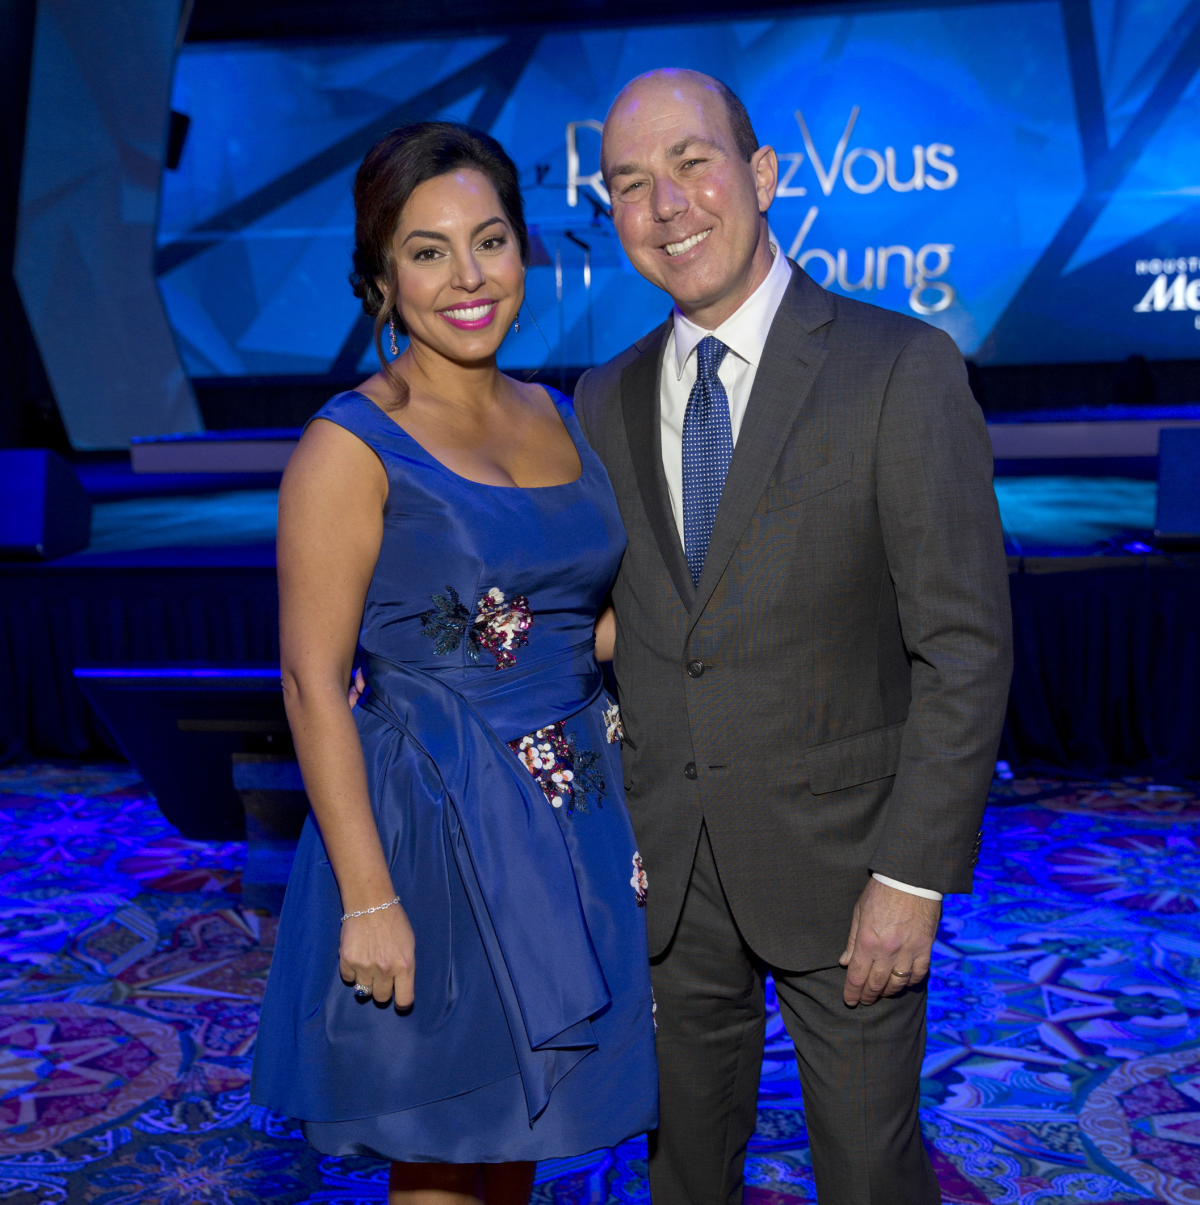 Houston, Methodist Hospital Rendezvous Live Young Gala, November 2017, Nicole Katz, Evan Katz